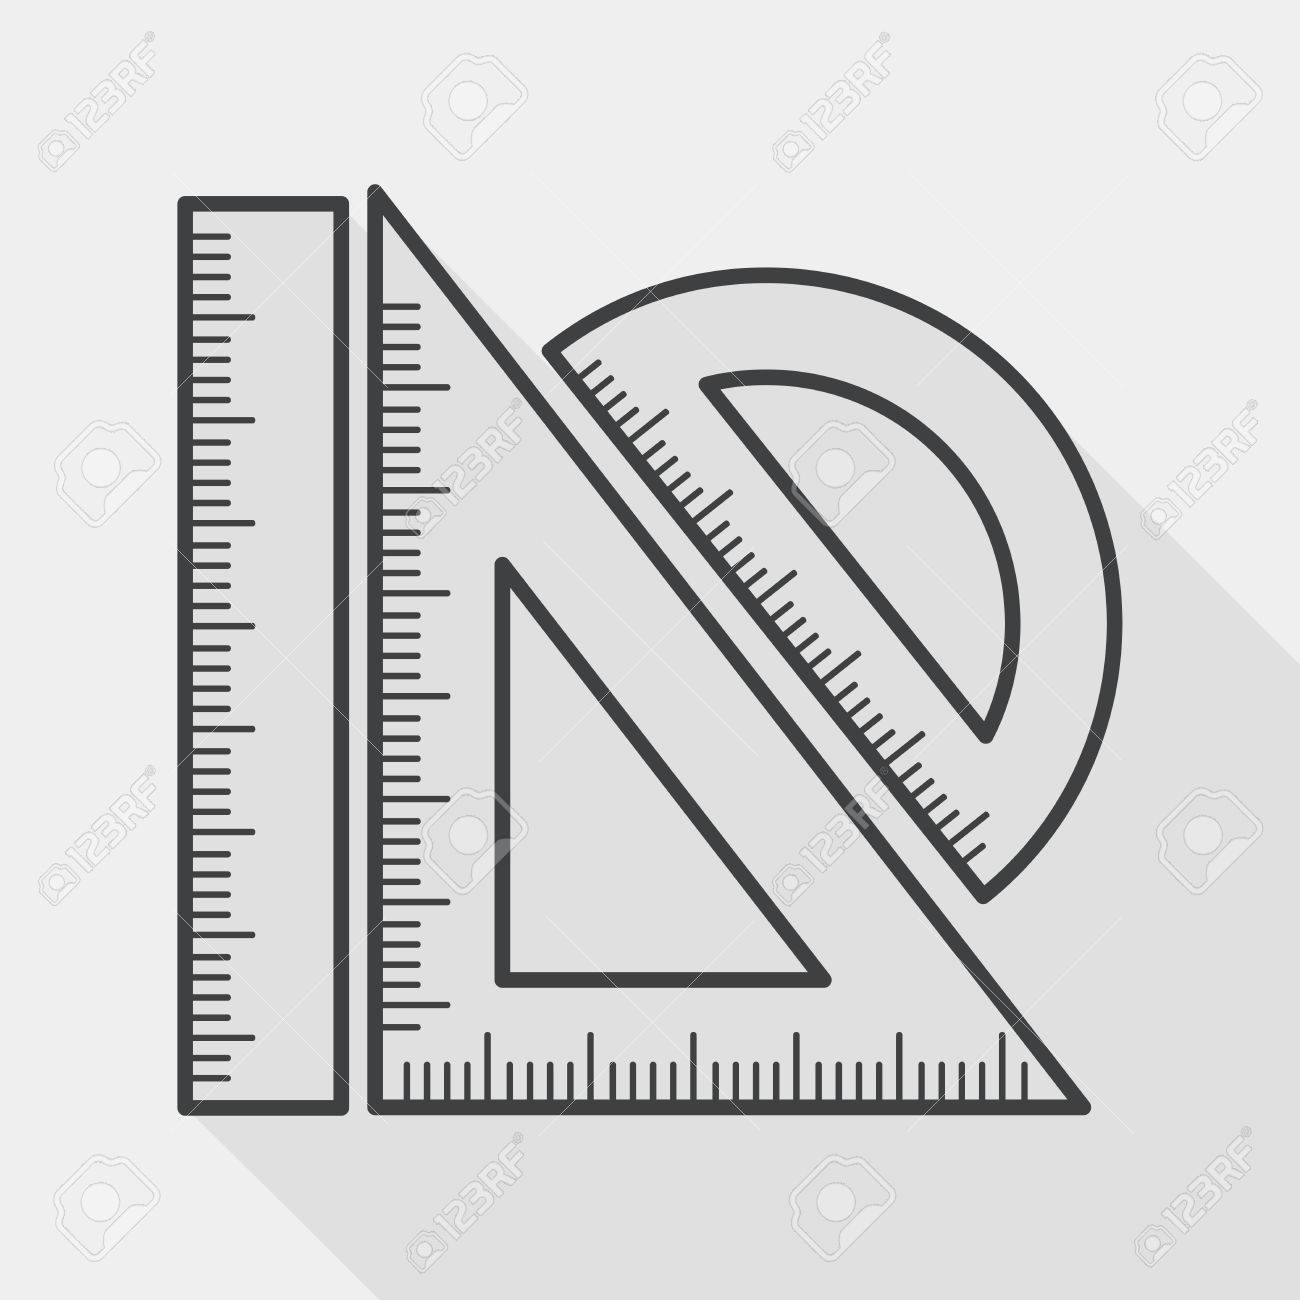 Ruler flat icon with long shadow, line icon - 39492340